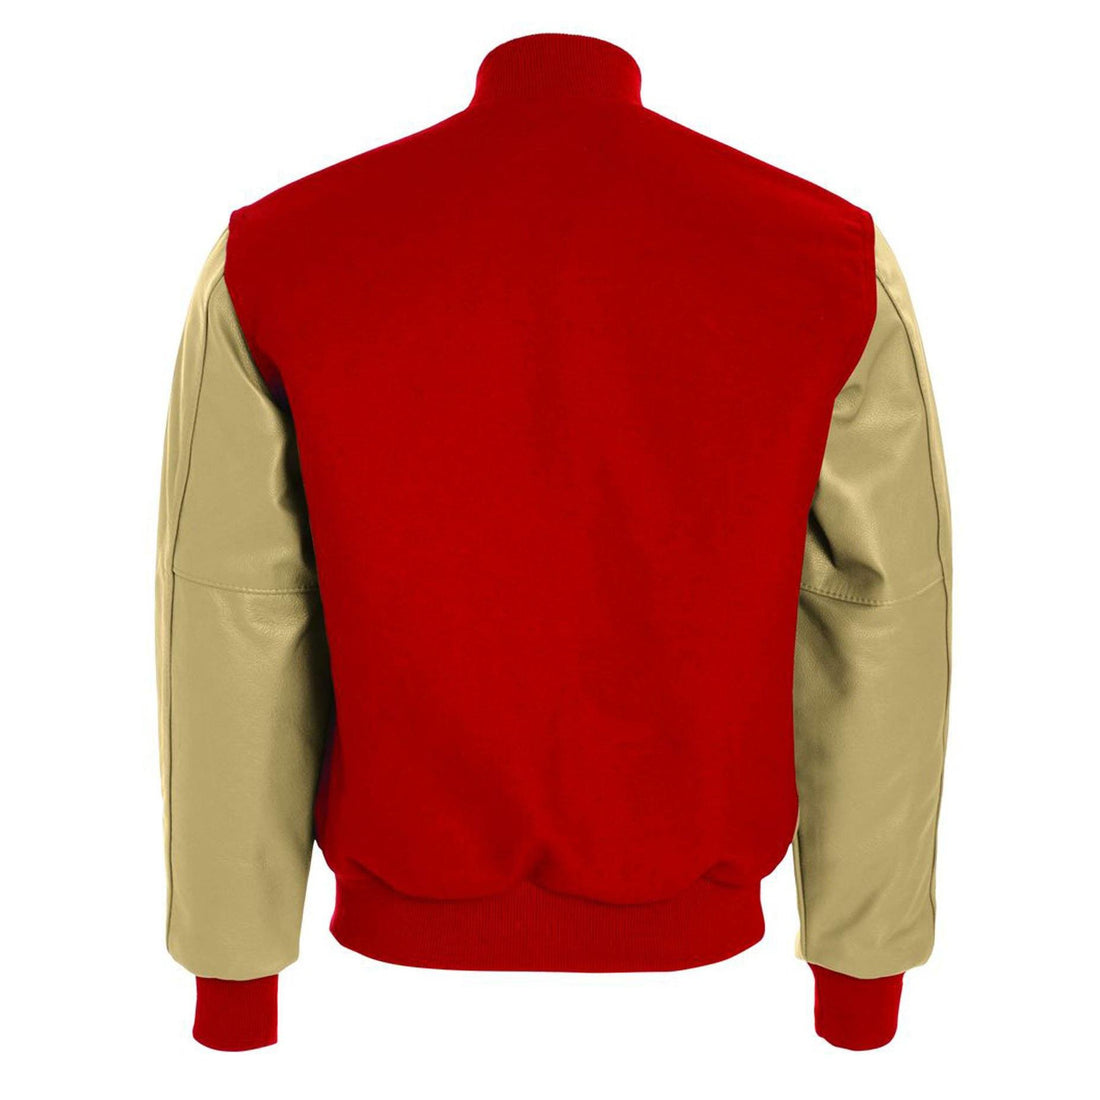 Custom USMC Varsity Jacket Scarlet and Cream